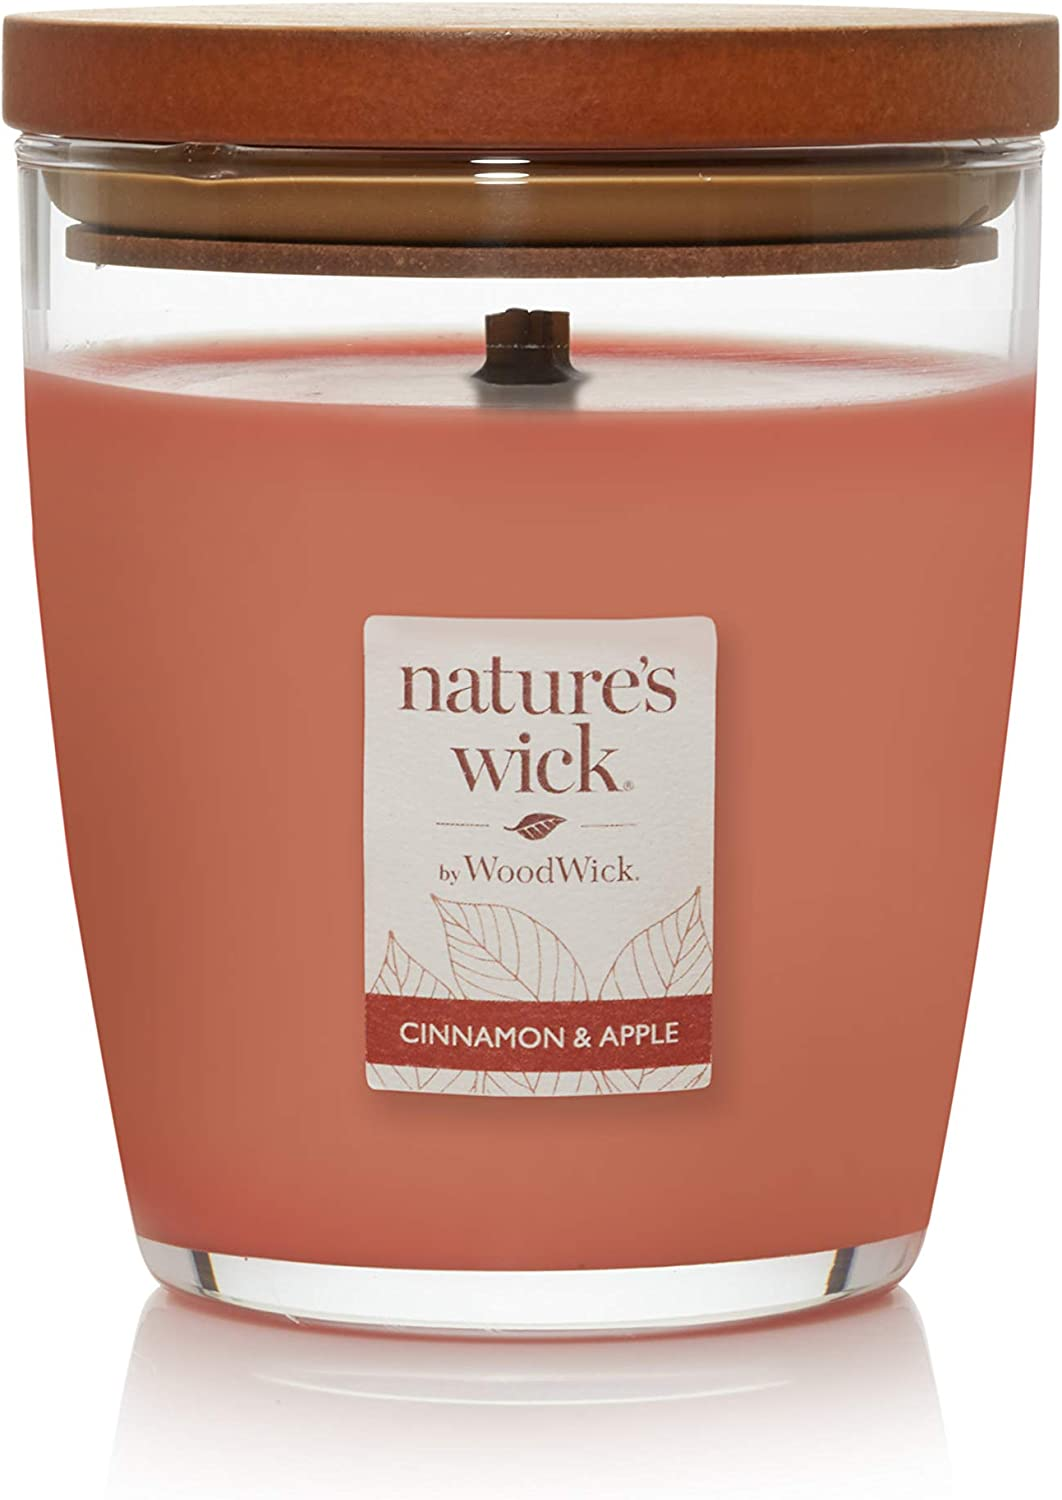 Nature's Wick Cinnamon & Apple Candle, 18 oz